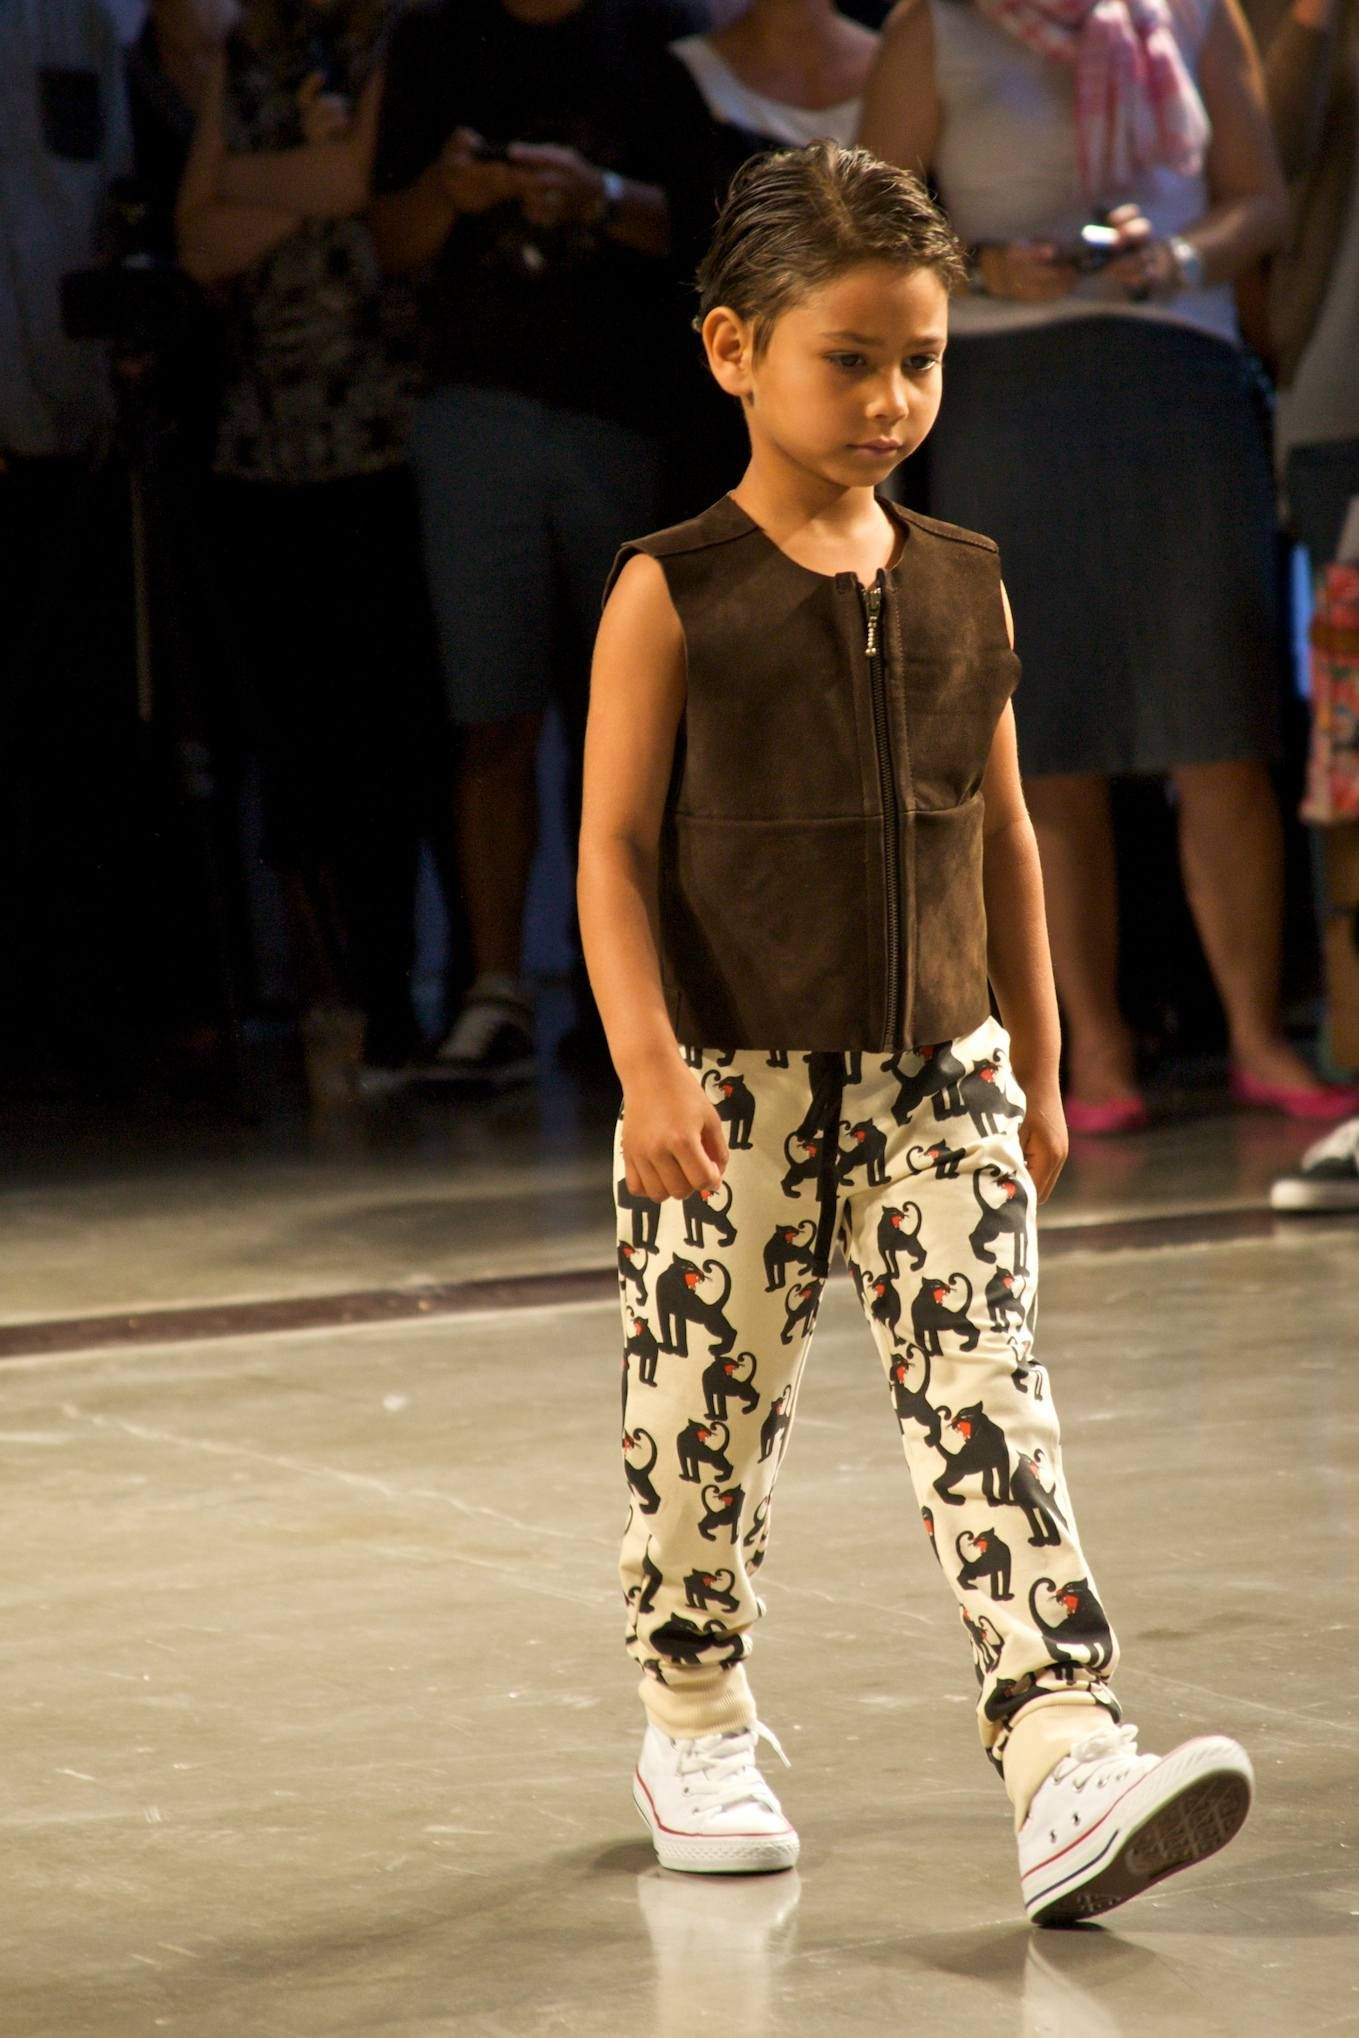 Petit Nord suede vest and Mini Rodini trousers at CPH Kids fashion show for summer 2013